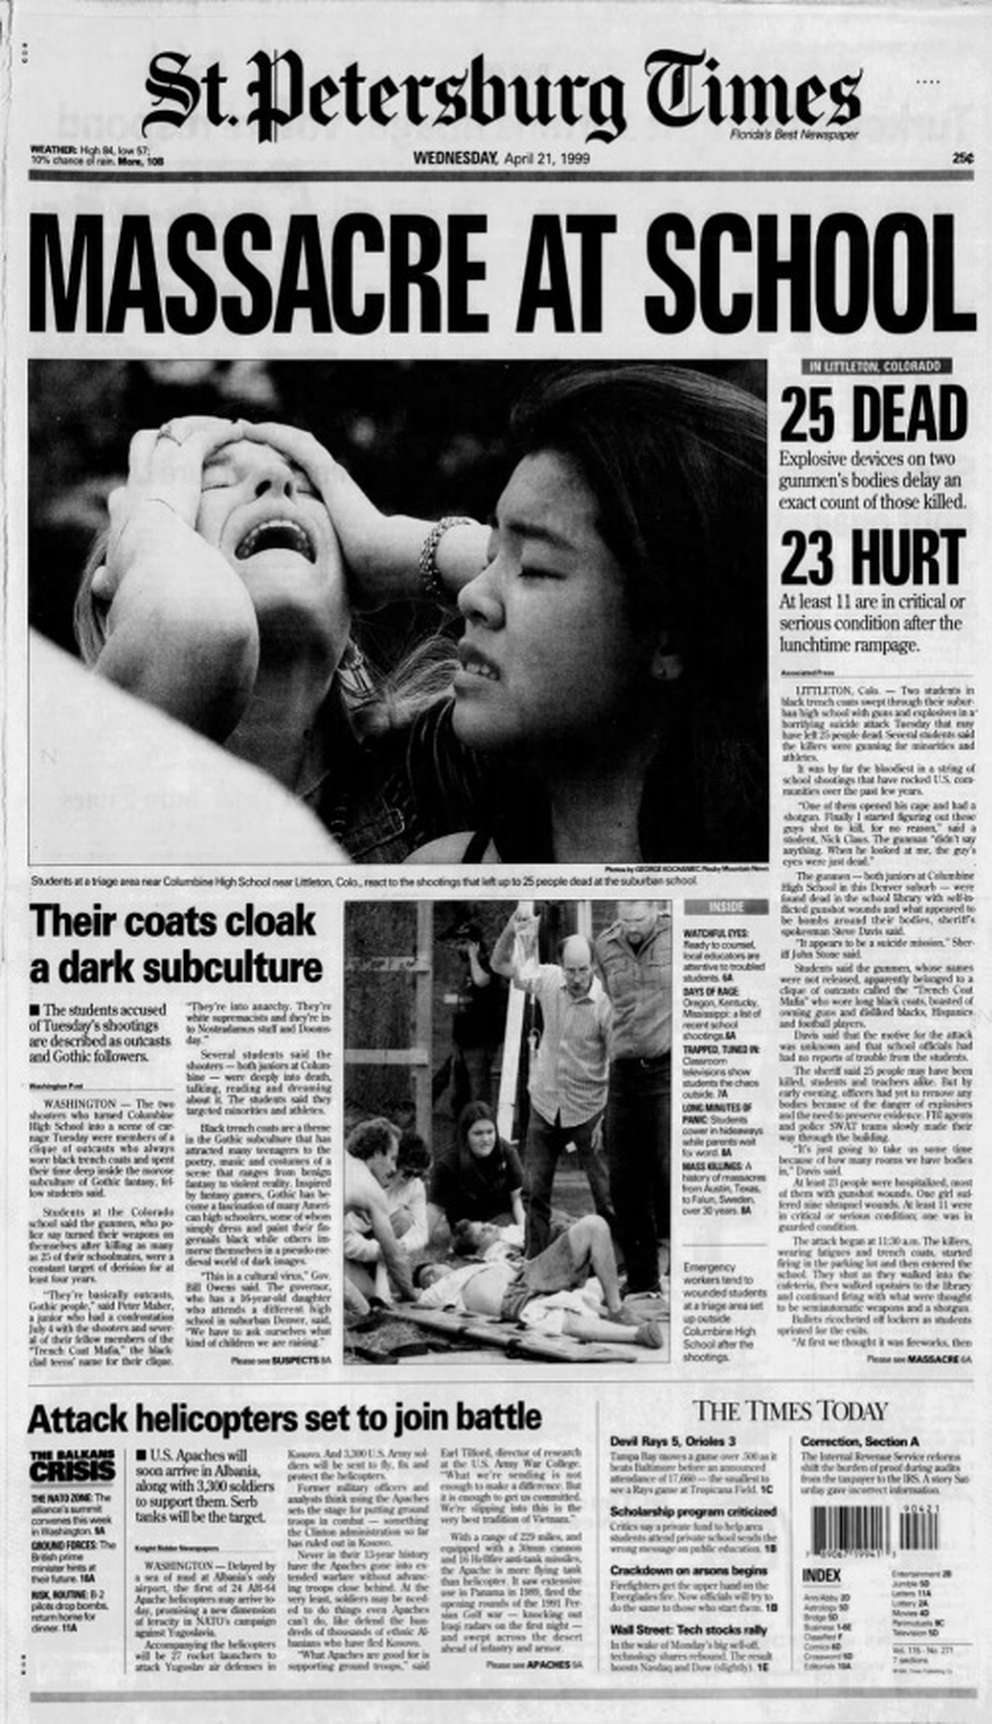 April 20, 1999: 13 killed. Two students attacked their own school and killed 12 other students and one teacher at Columbine High School in Colorado. Then they committed suicide. The 25 dead listed was due to incomplete information at the time.